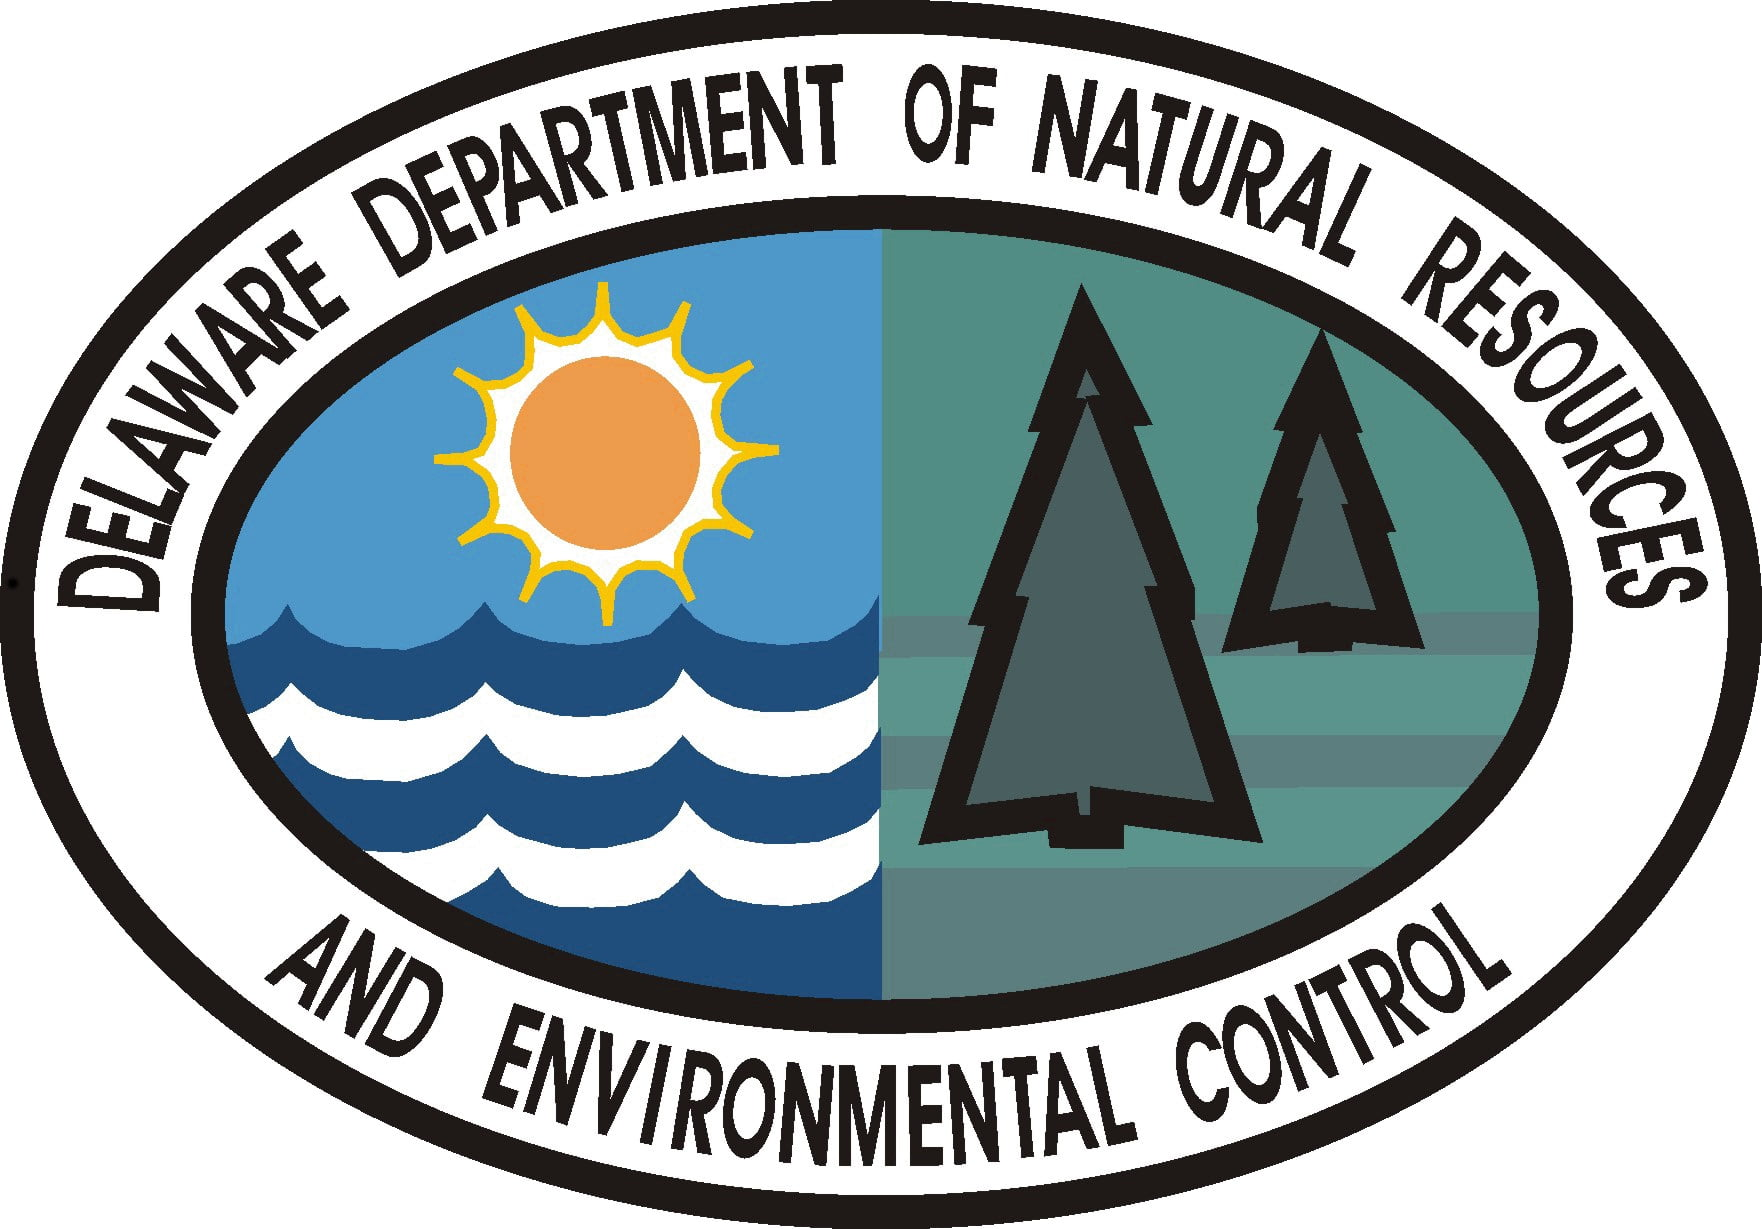 Logo for the Delaware Department of Natural Resources and Environmental Control as helpful information from Newark Housing Authority.